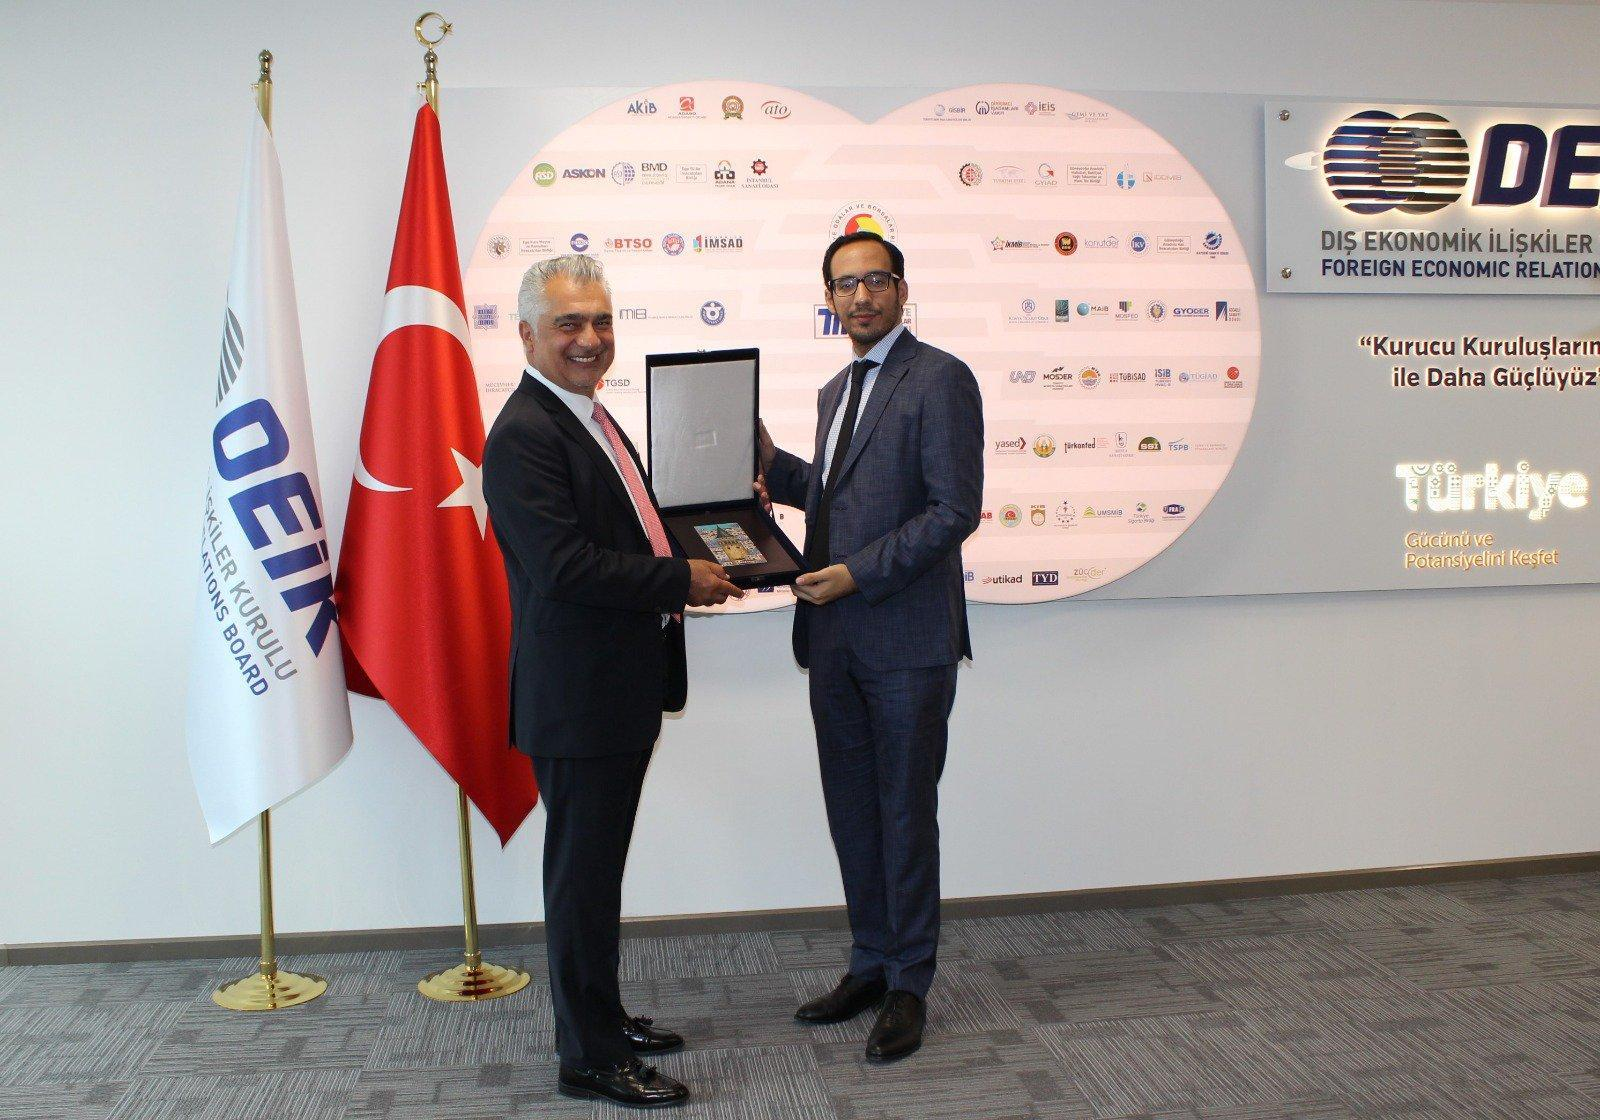 Ibrajim Bukele's trip to Turkey in August 2019 as a special guest of the Minister of Foreign Relations was paid from public funds. He was introduced there as an advisor to the president. This photo was published August 22, 2019 on social media by DEIK, a Turkish business association. Ibrajim Bukele is pictured greeting one of the DEIK executives. Photo published by DEIK.